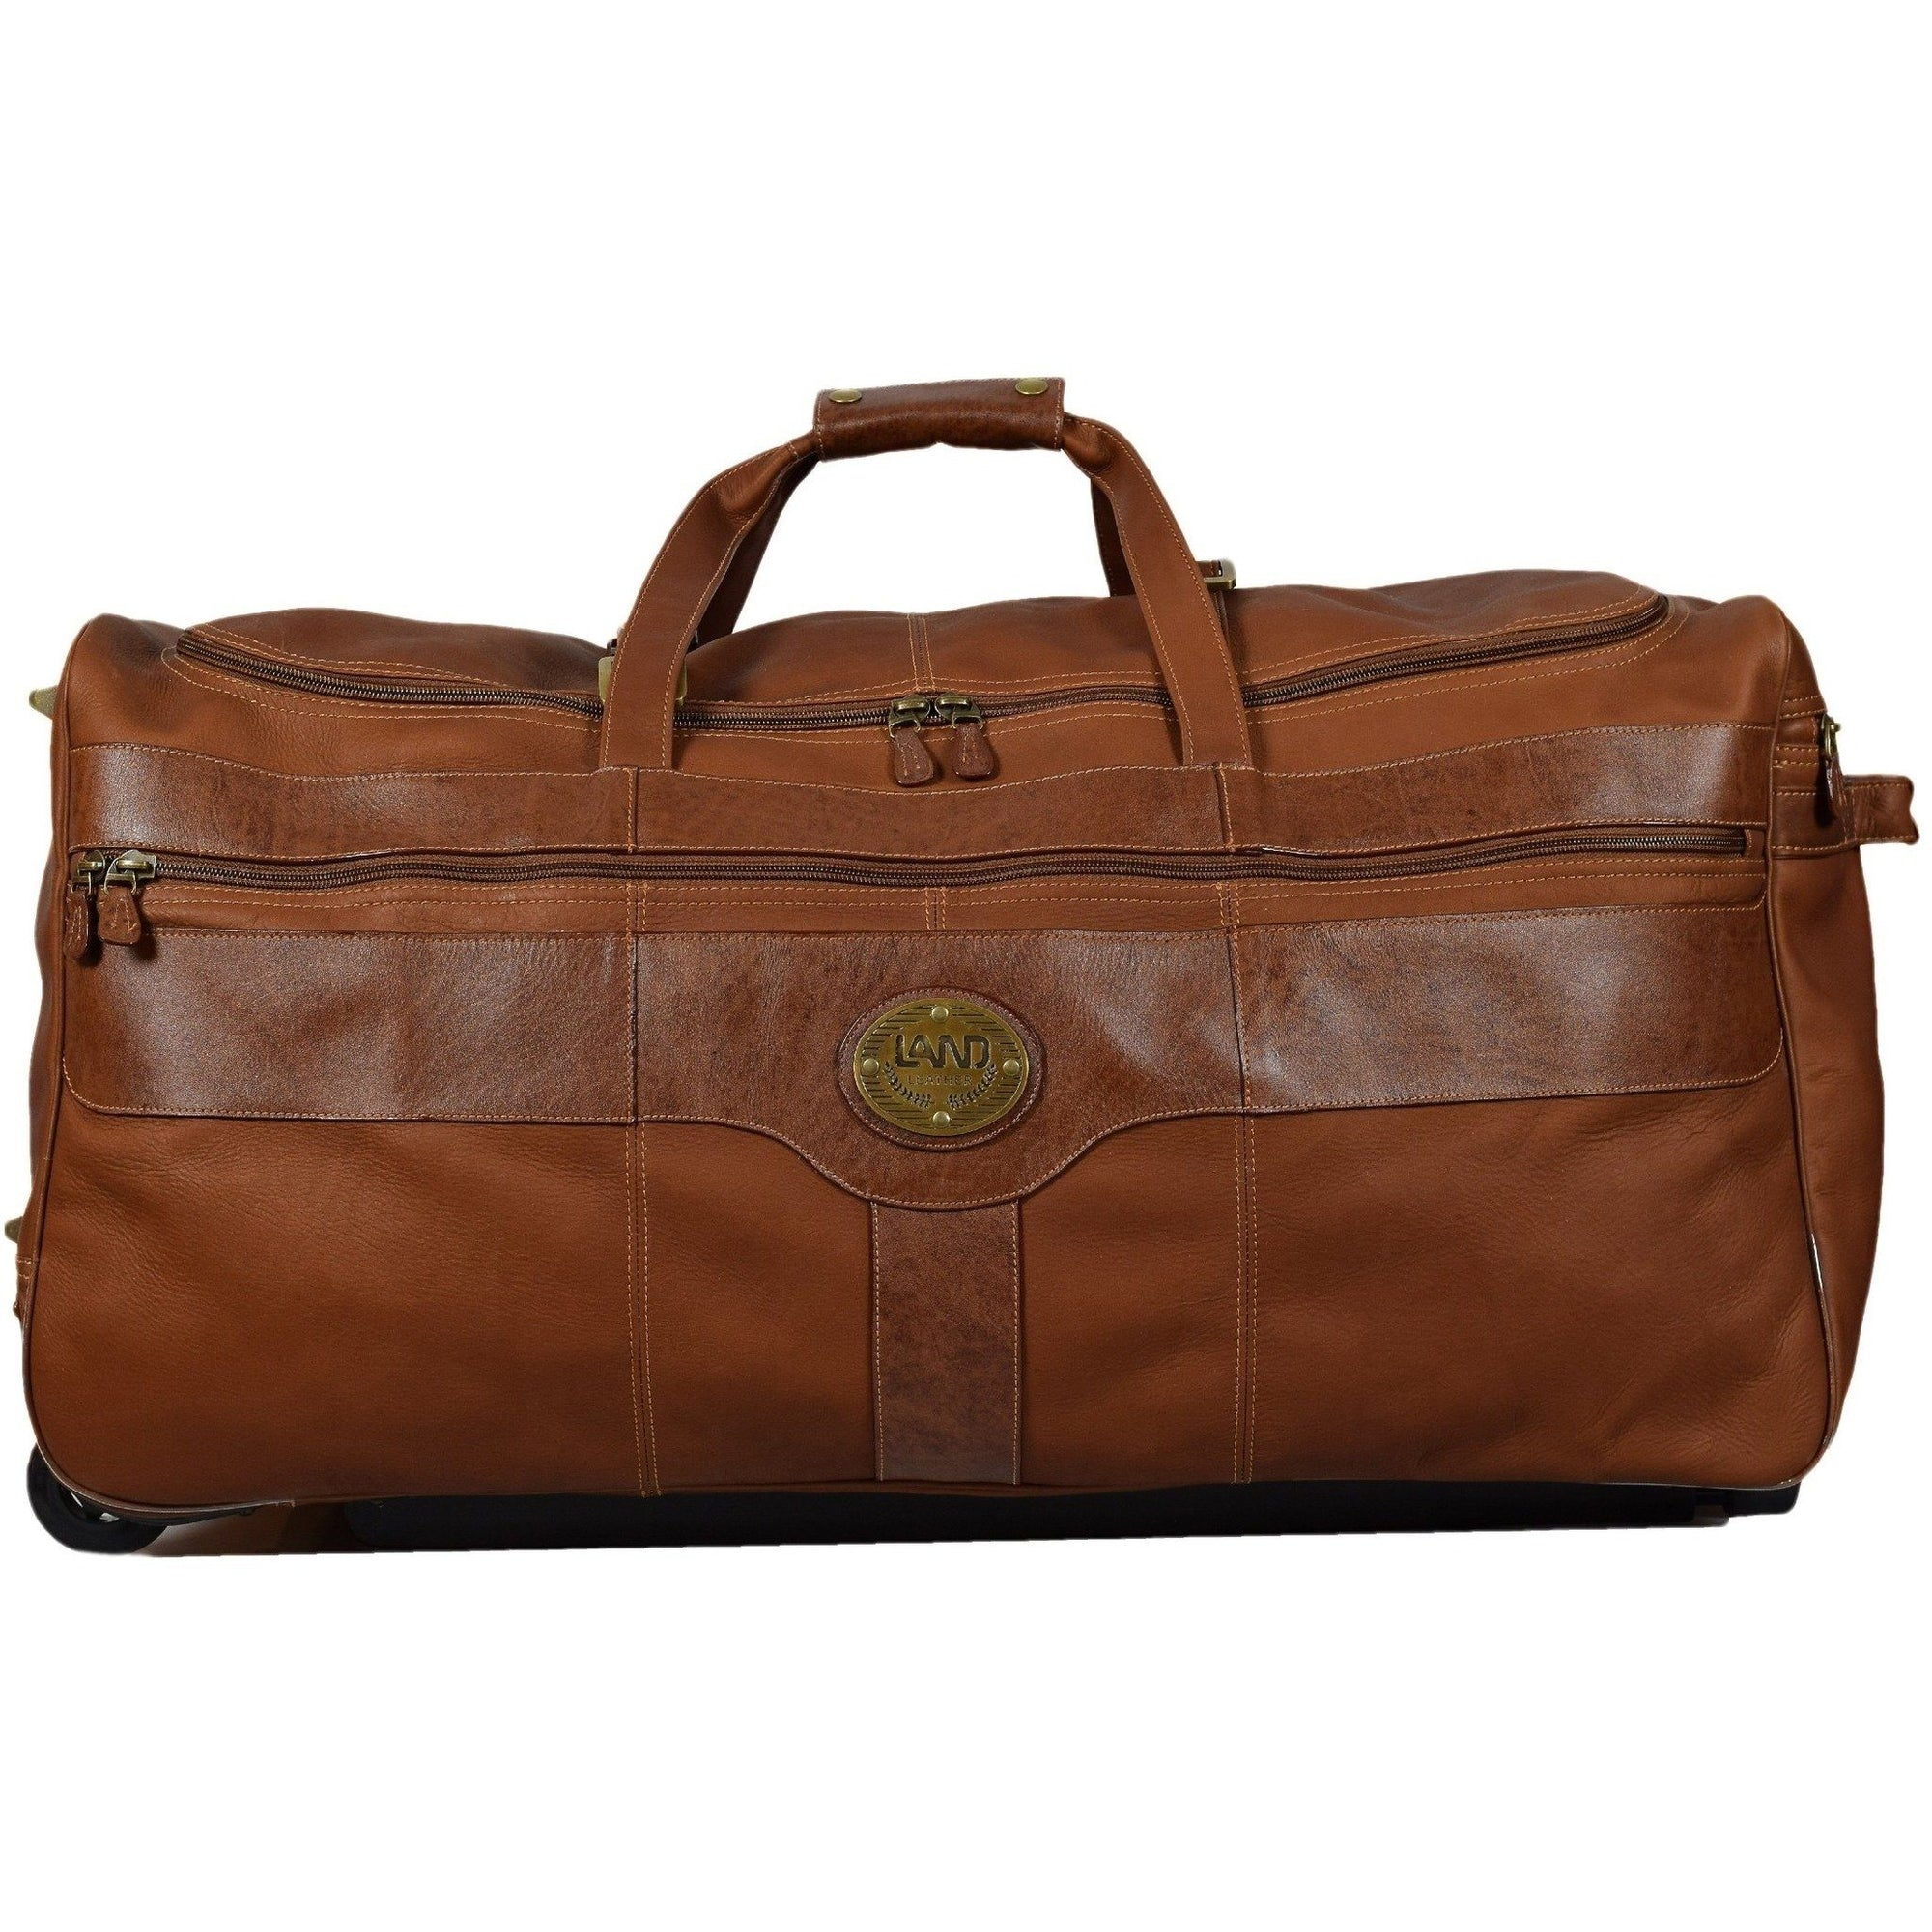 Santa Fe Super Wheeled Duffel, Duffel Bag | LAND Leather